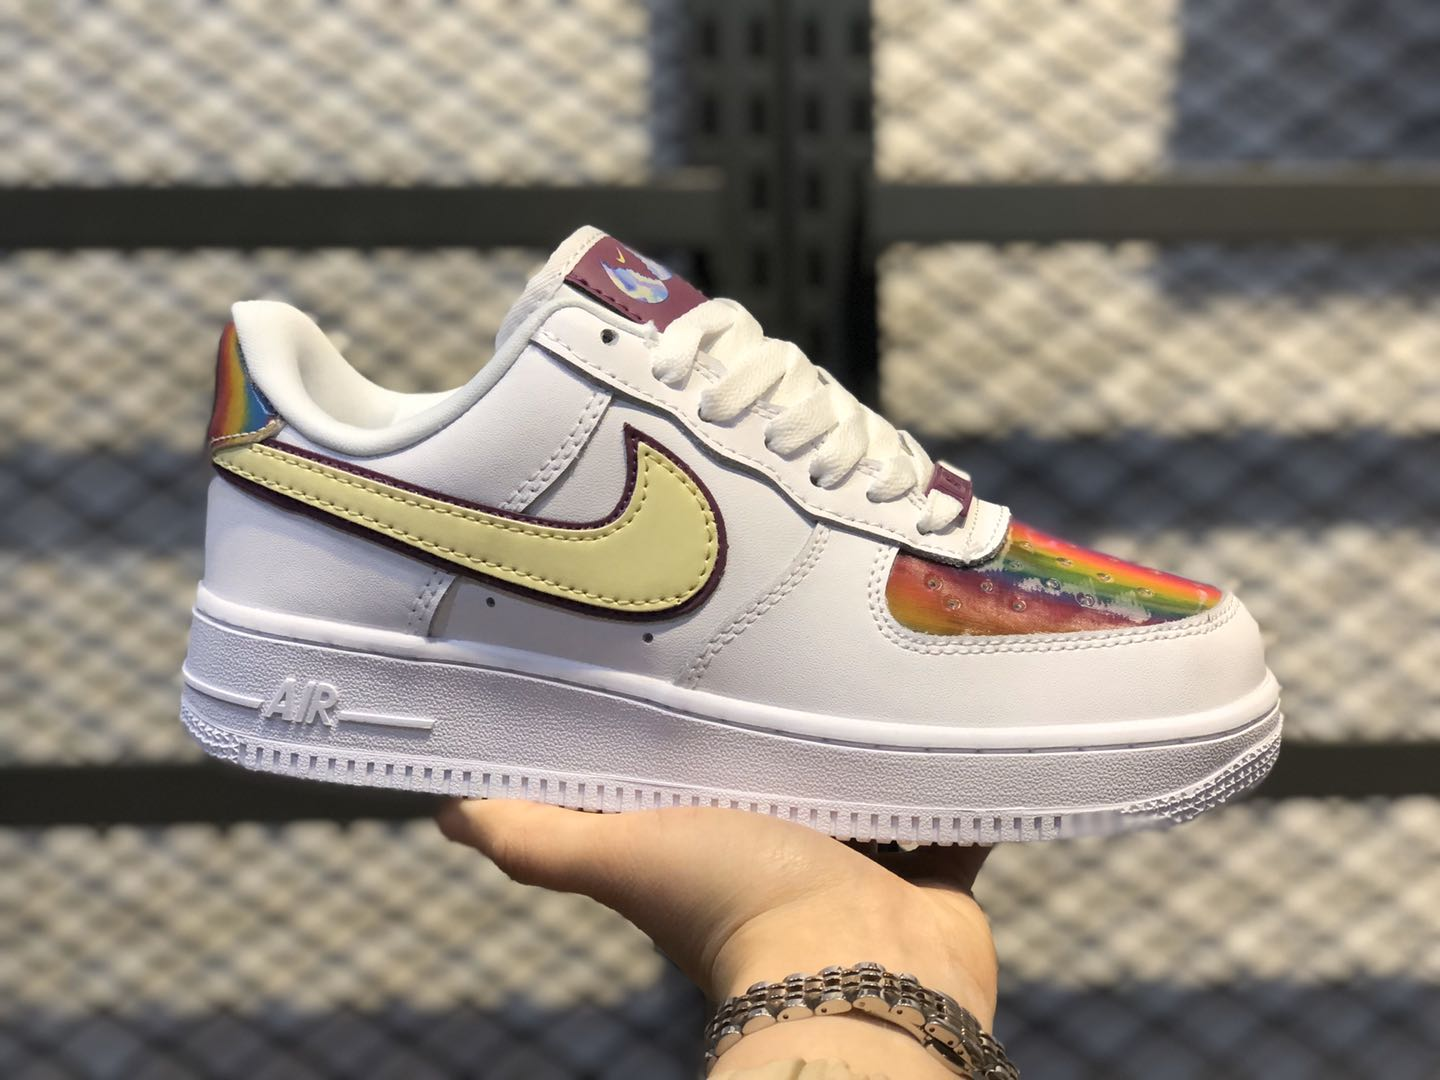 """Nike Air Force 1 """"Easter 2020"""" White/Barely Volt-Hyper Blue CW0367-100"""